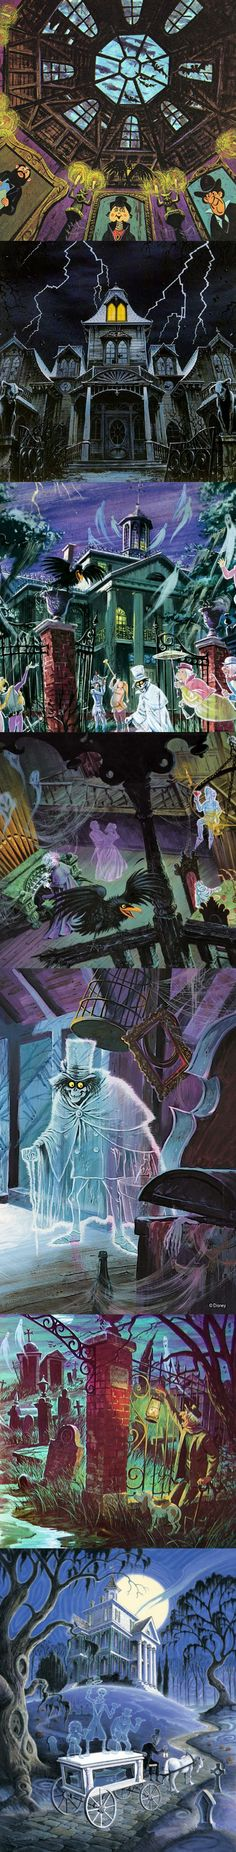 Artwork from Disney's The Haunted Mansion